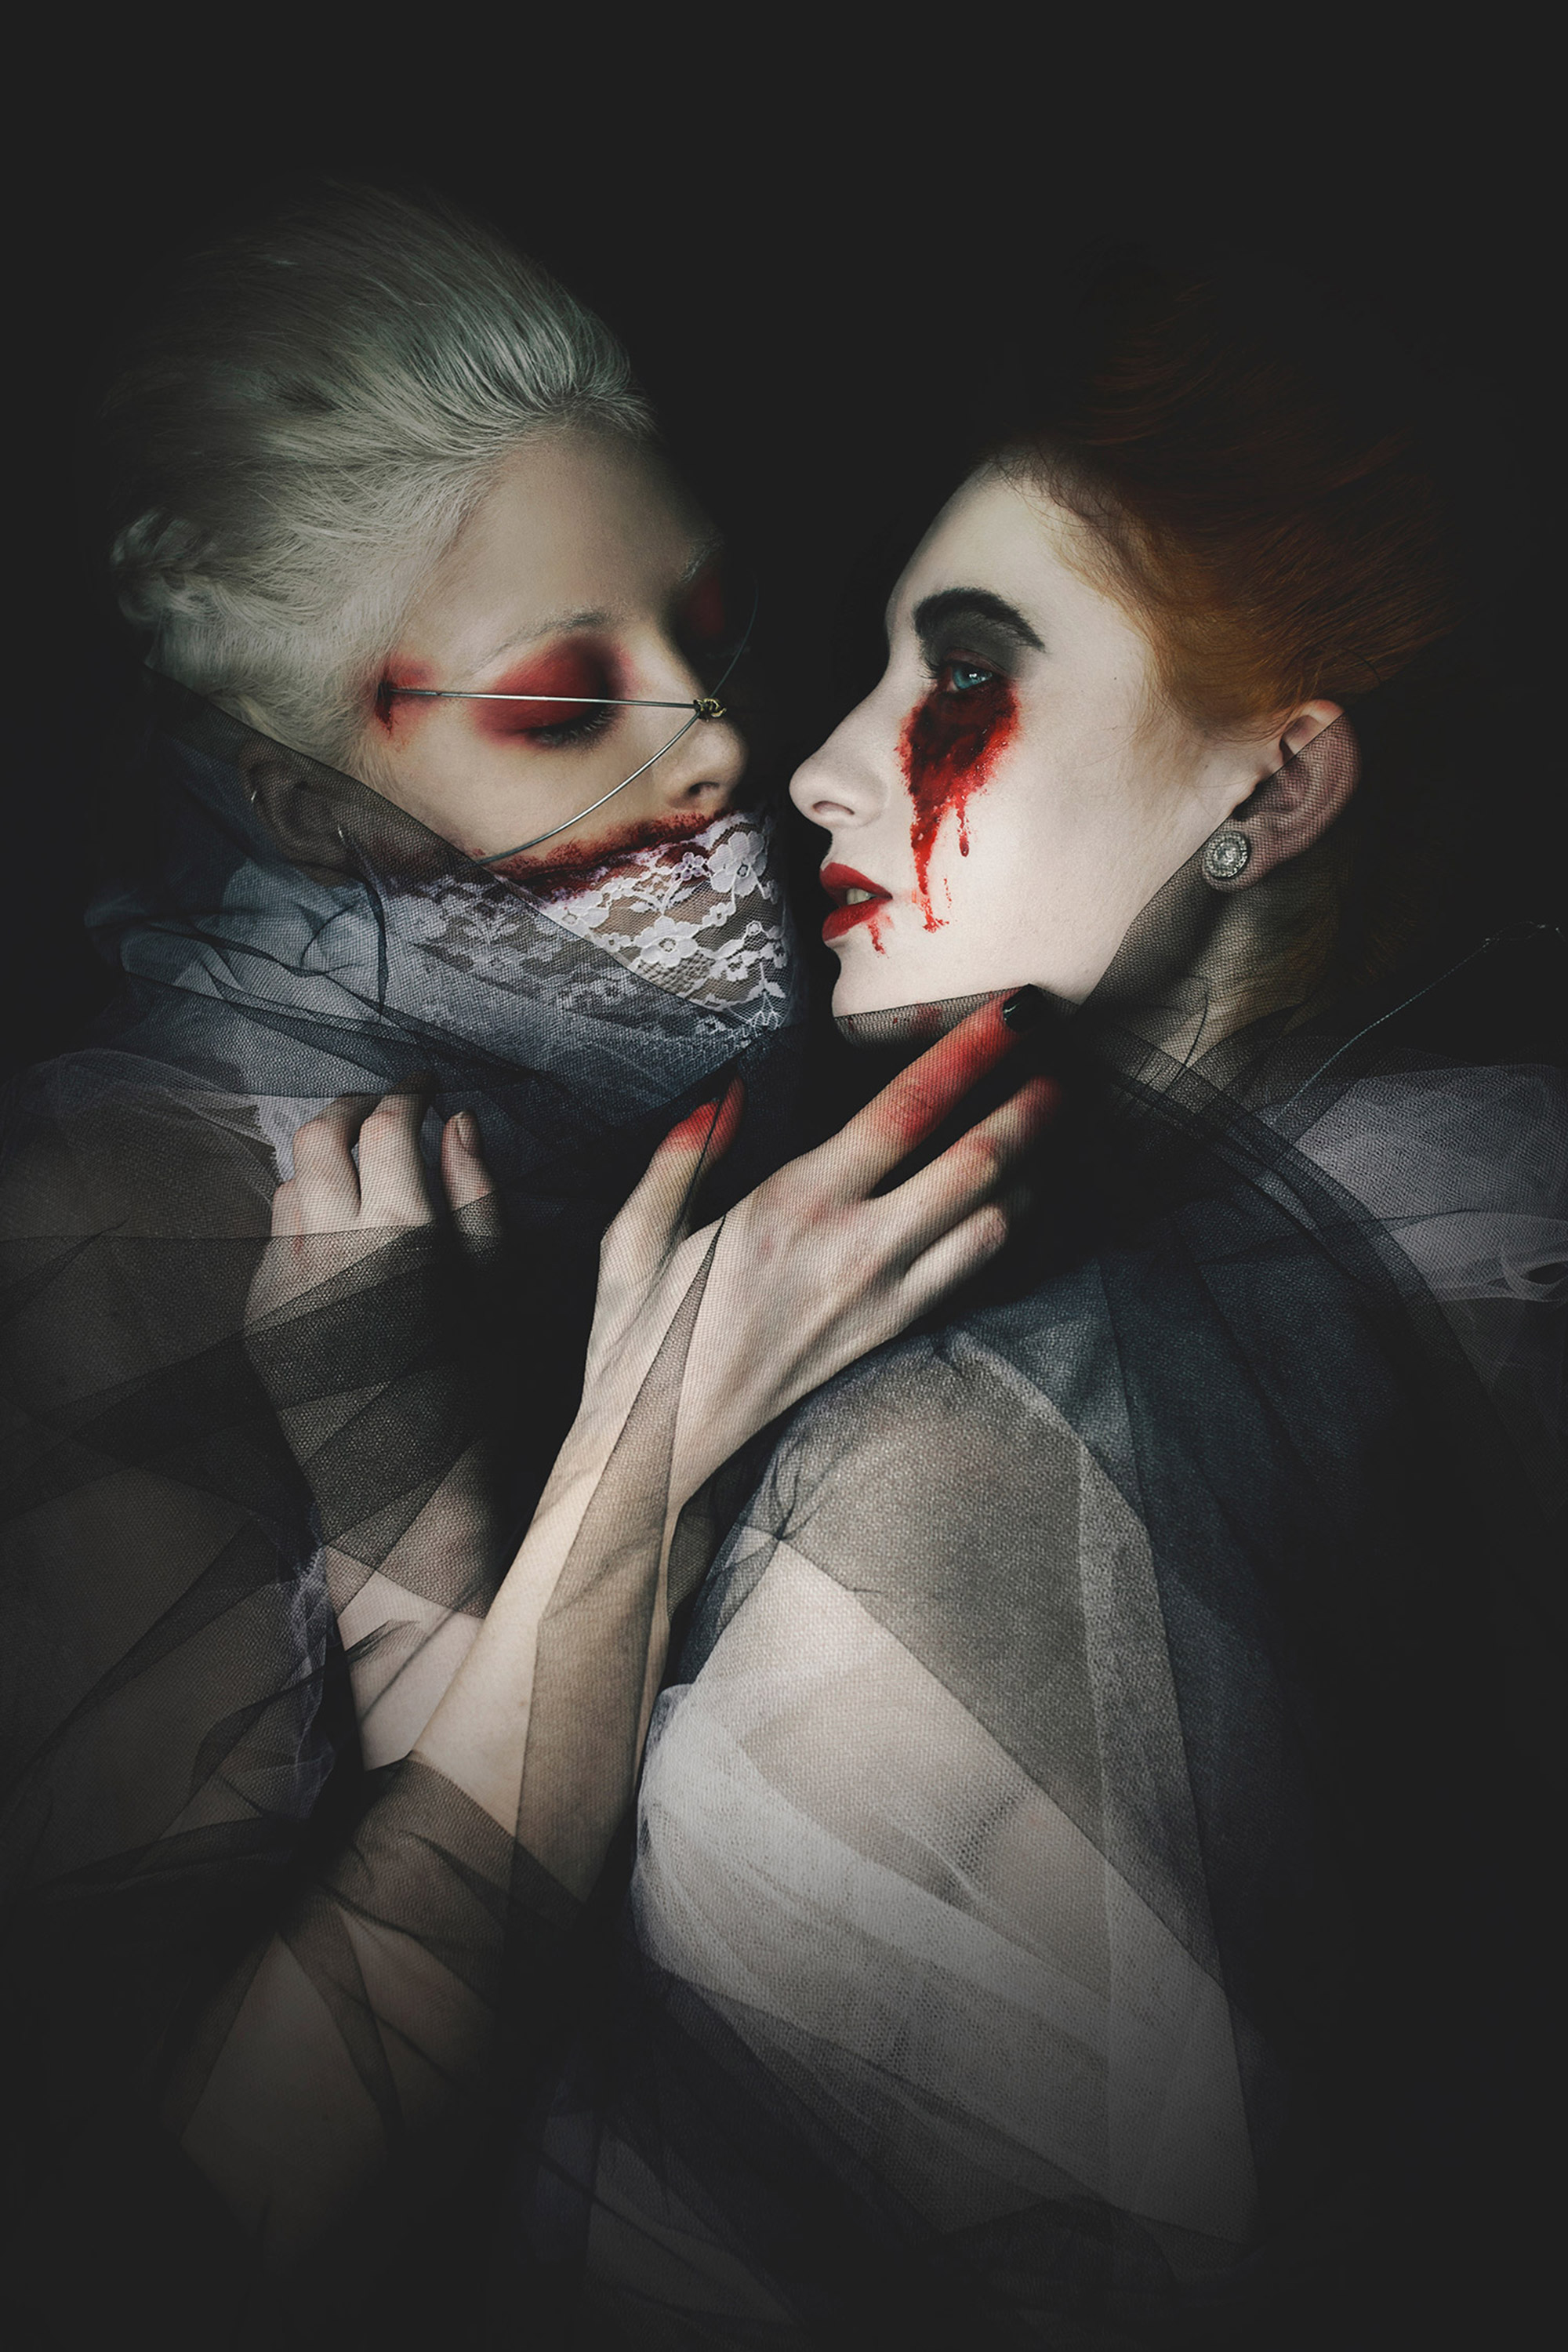 Danse Macabre: Darkly Romantic Portraiture by Eliza Kinchington